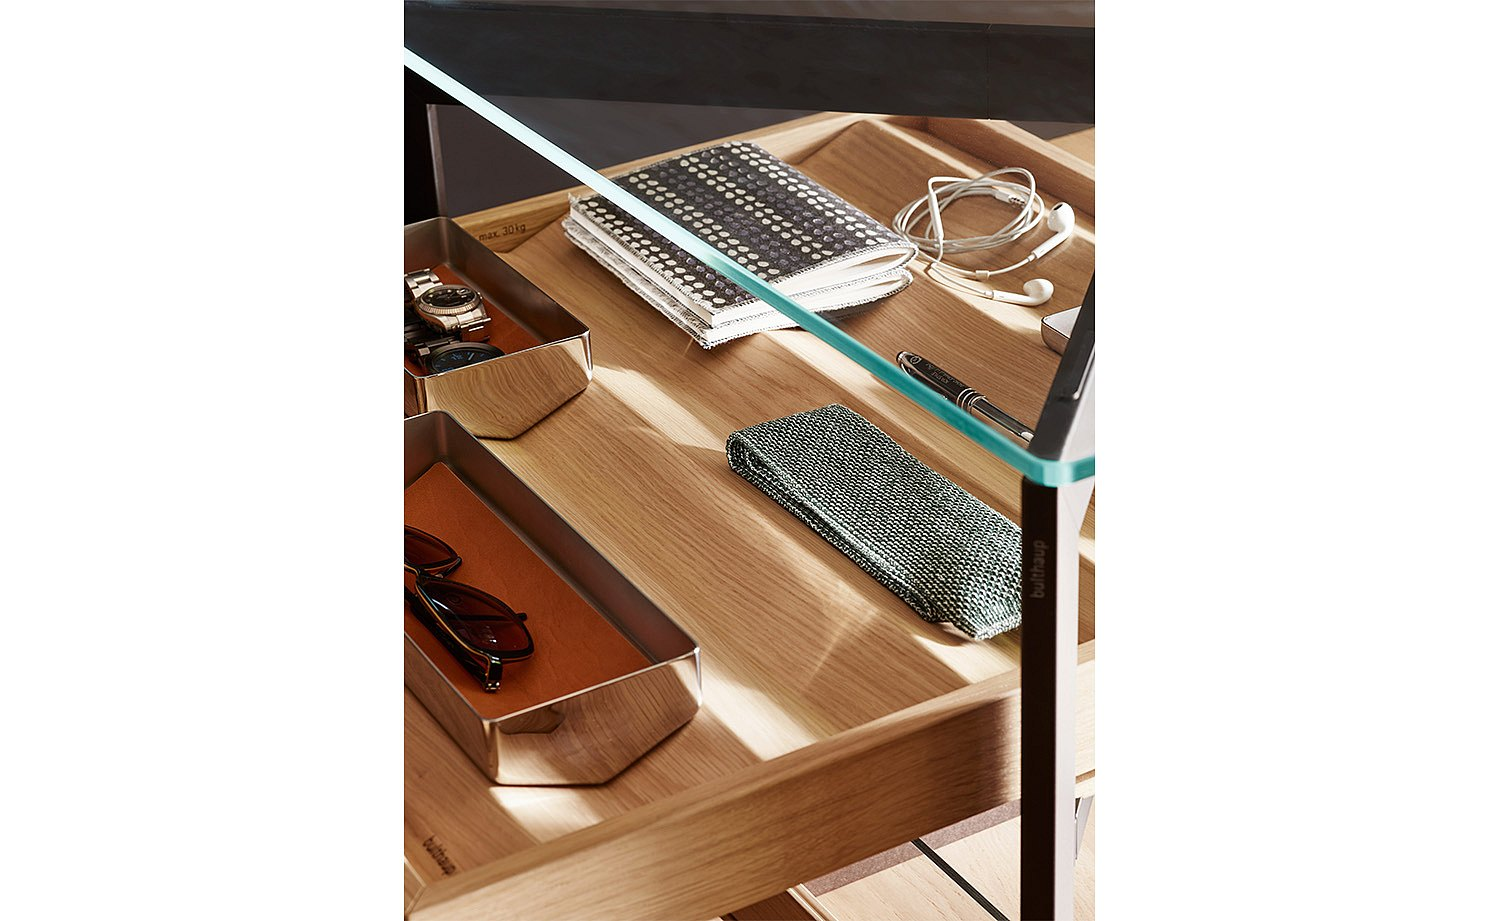 Wooden prisms in the pull-out tray create space and order for individual items